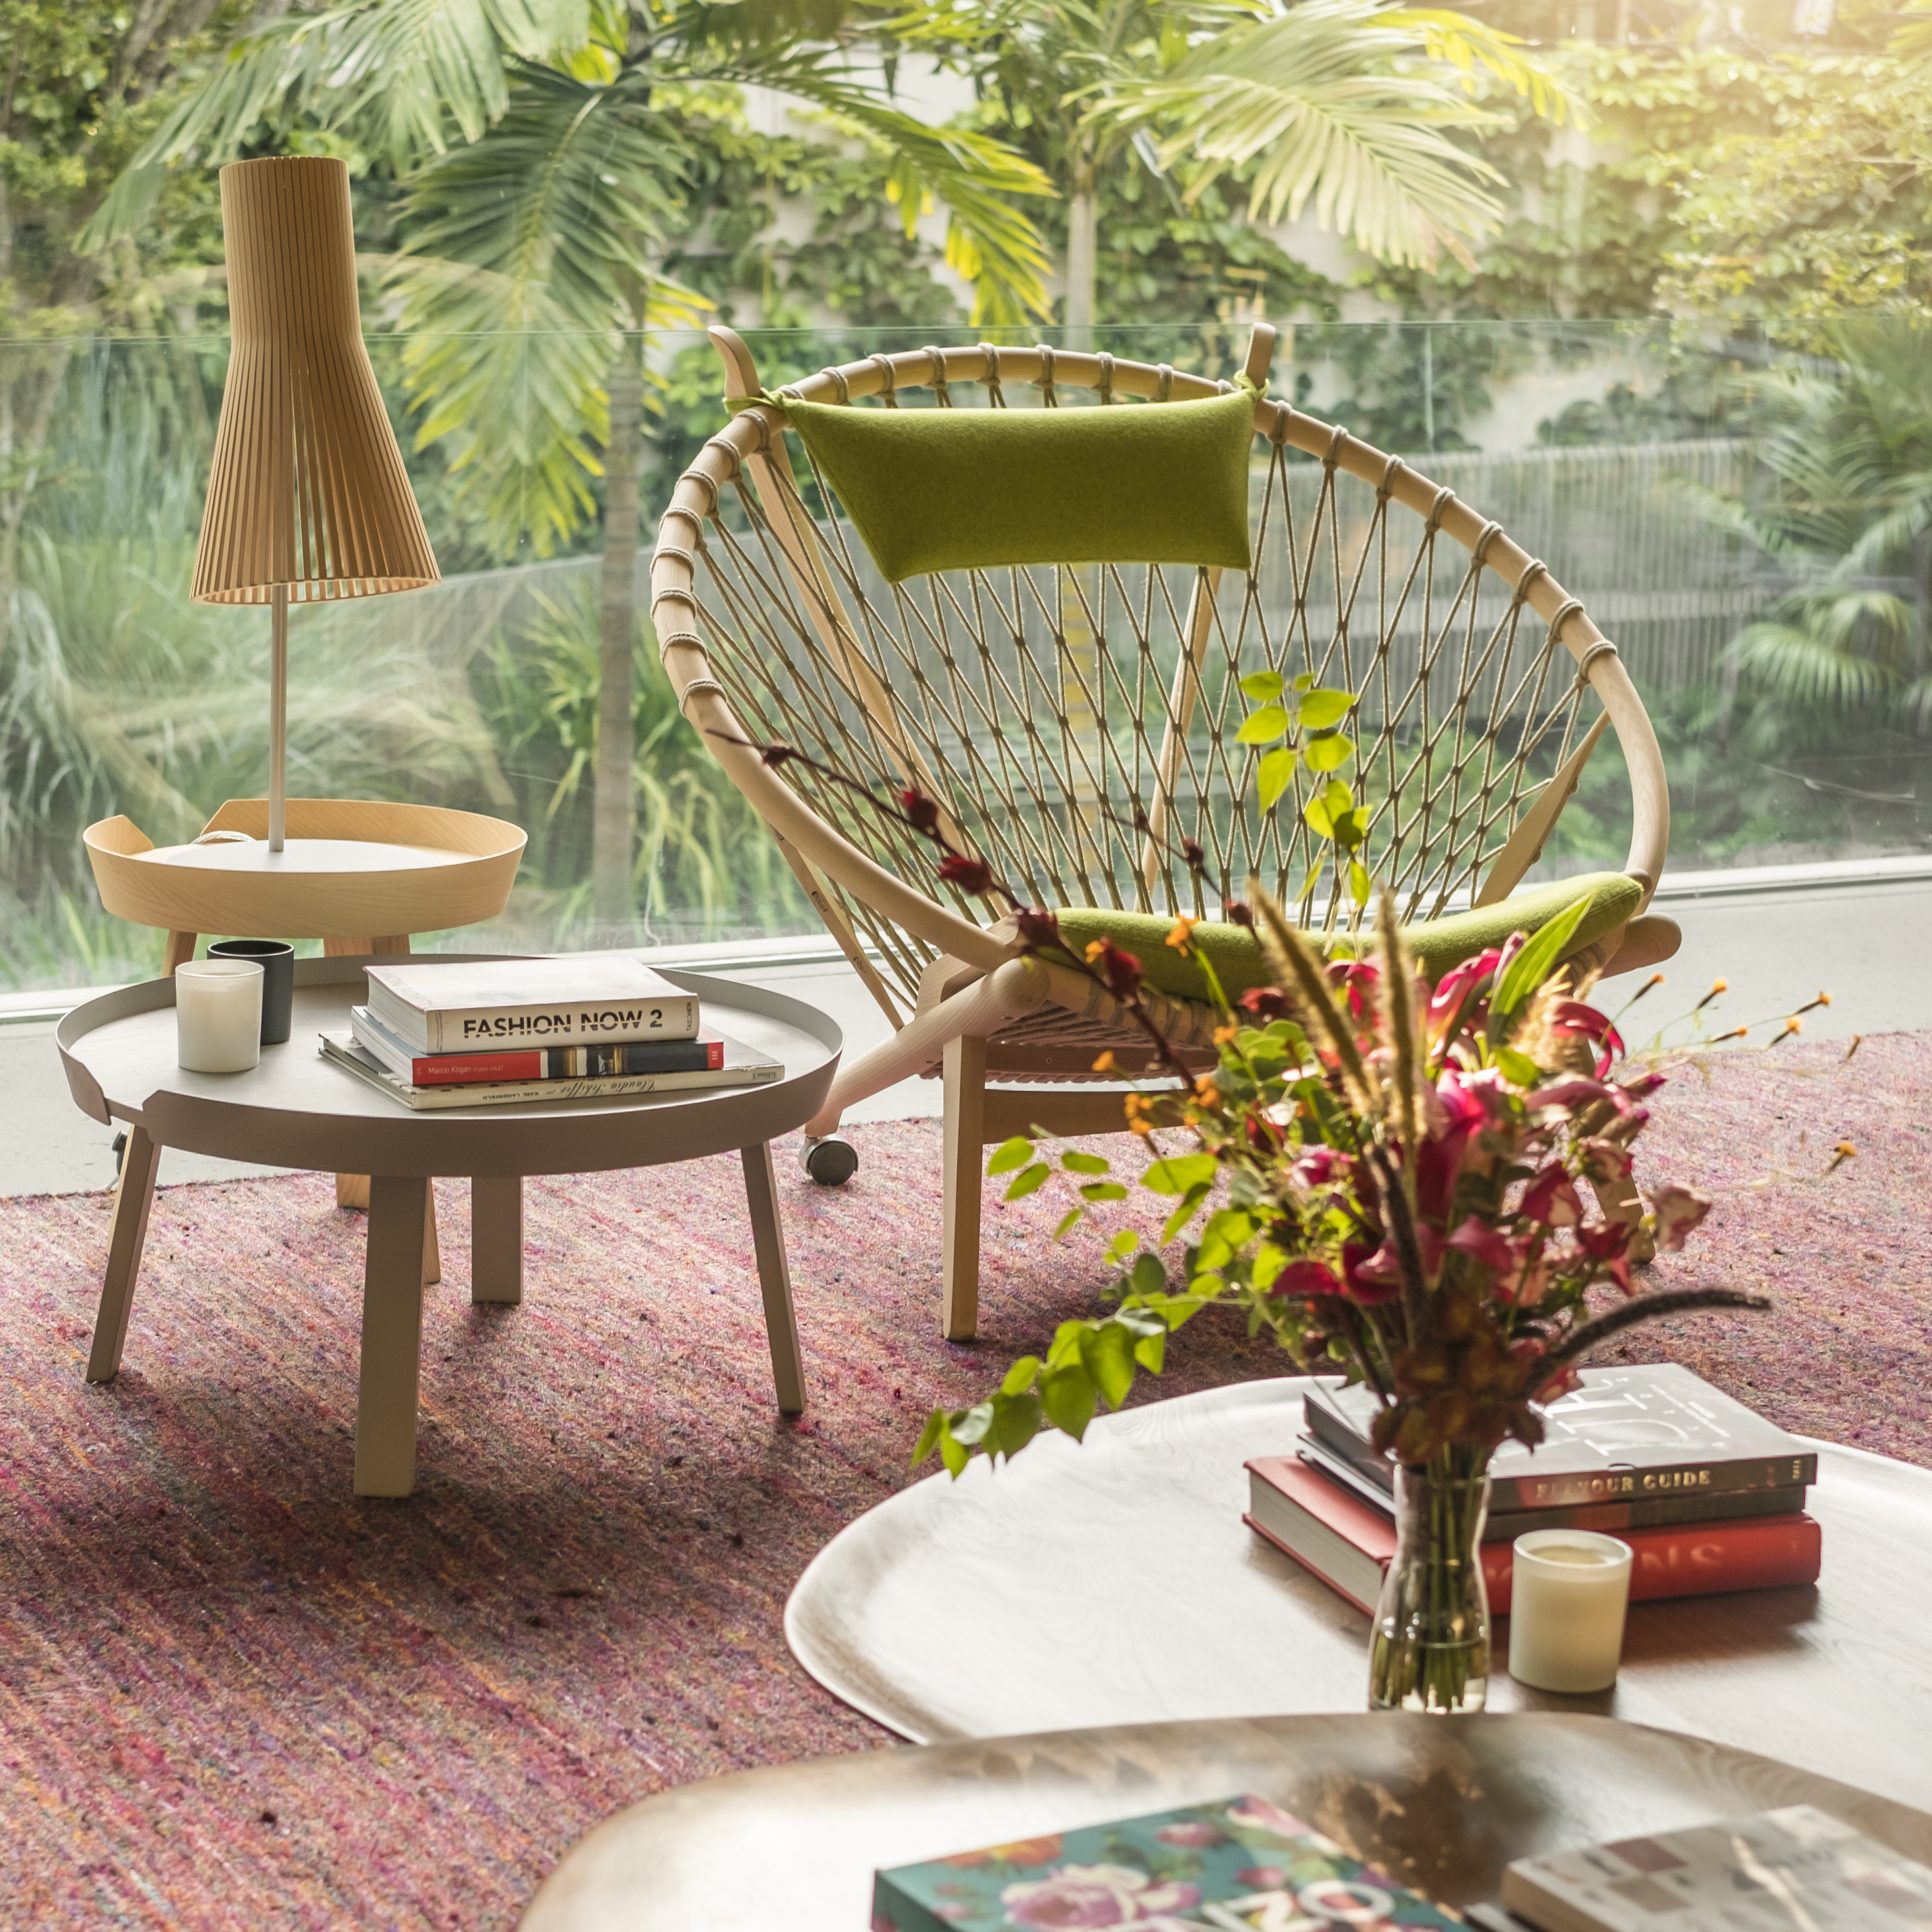 Design Küchenlampe Table Lamp, Secto 4220, Natural Birch, Led, Ø25cm, H75cm - Secto Design - Nedgis Lighting